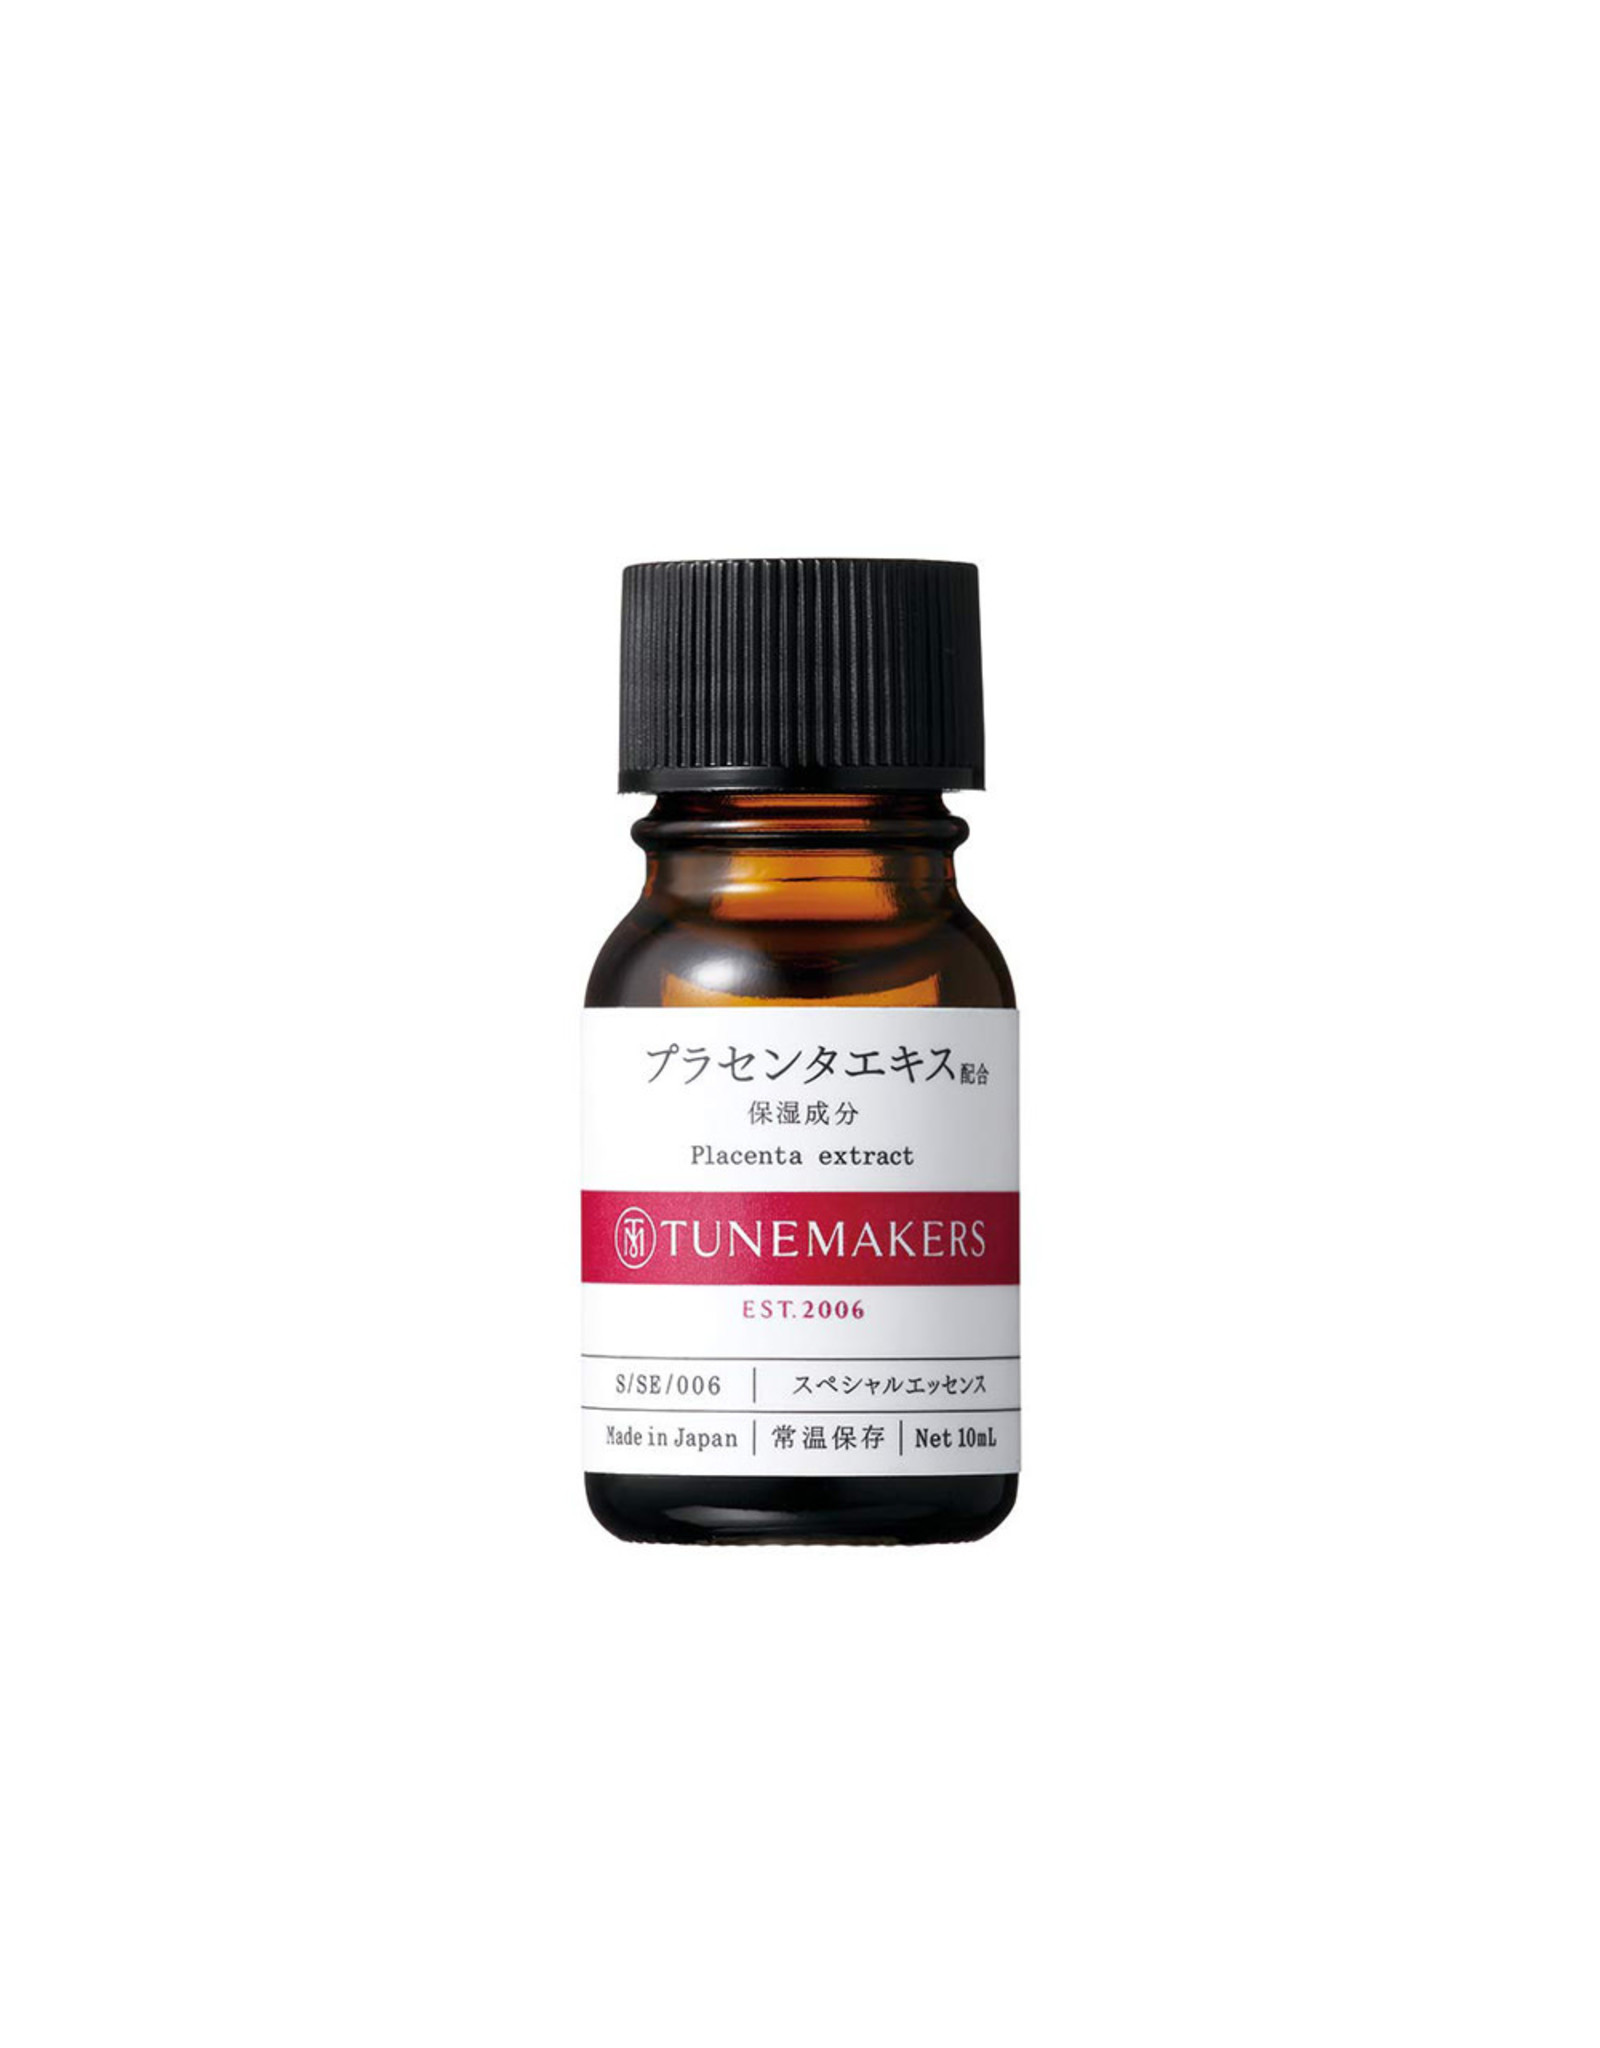 Tunemakers Tunemakers Placenta Extract S10-02